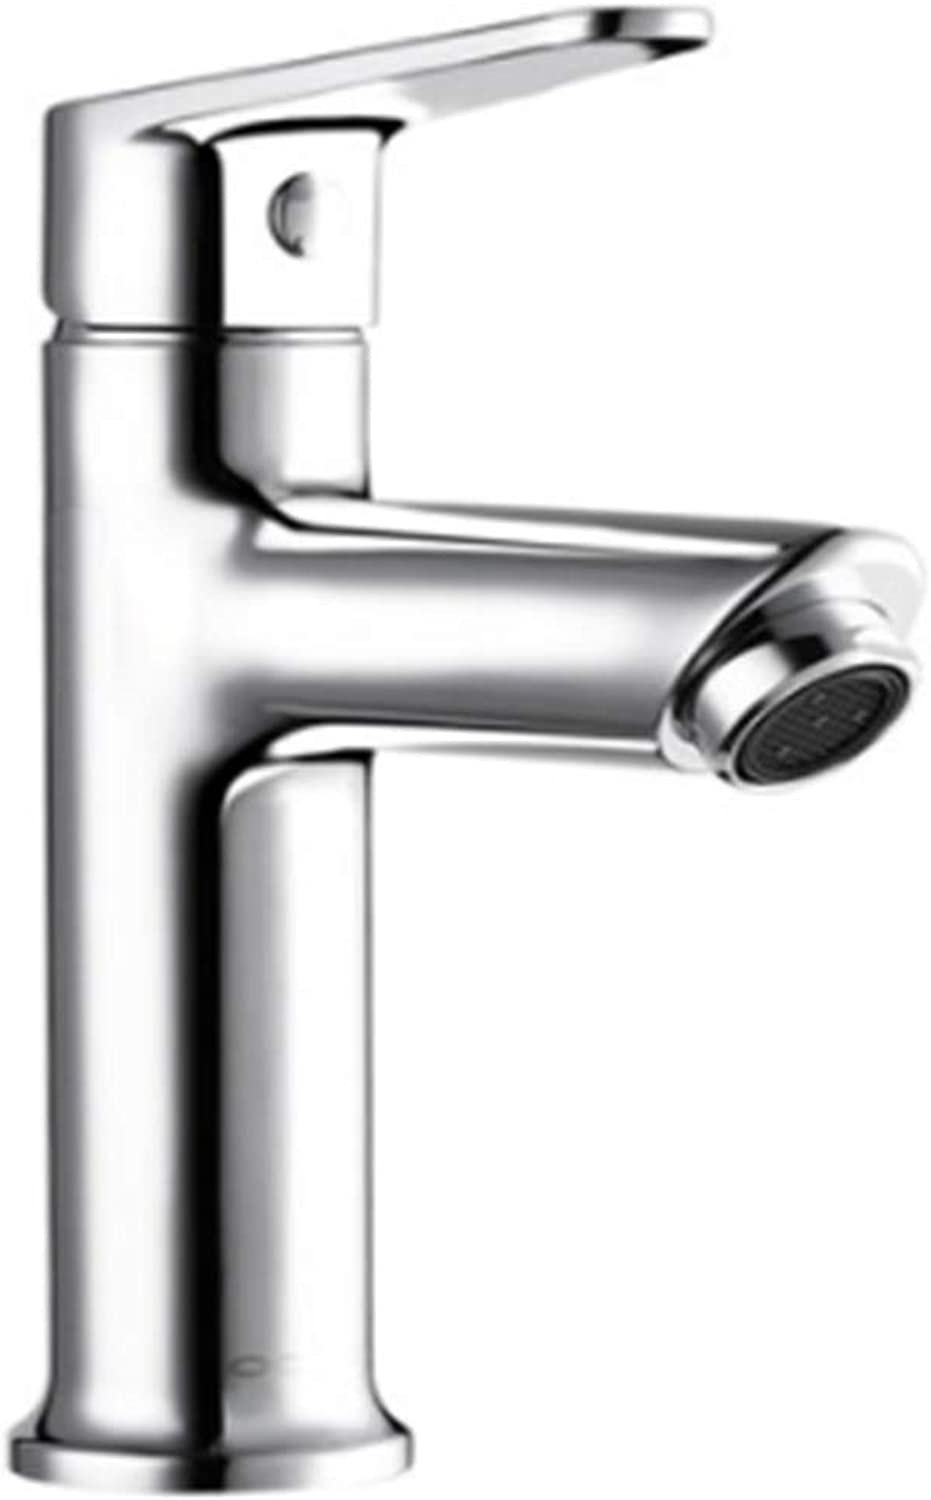 Kitchen Faucet Tapstainless Steelkitchen Faucet Profaucet, Hot and Cold Basin, Tap Basin, Washbasin, Hand Washing Faucet.